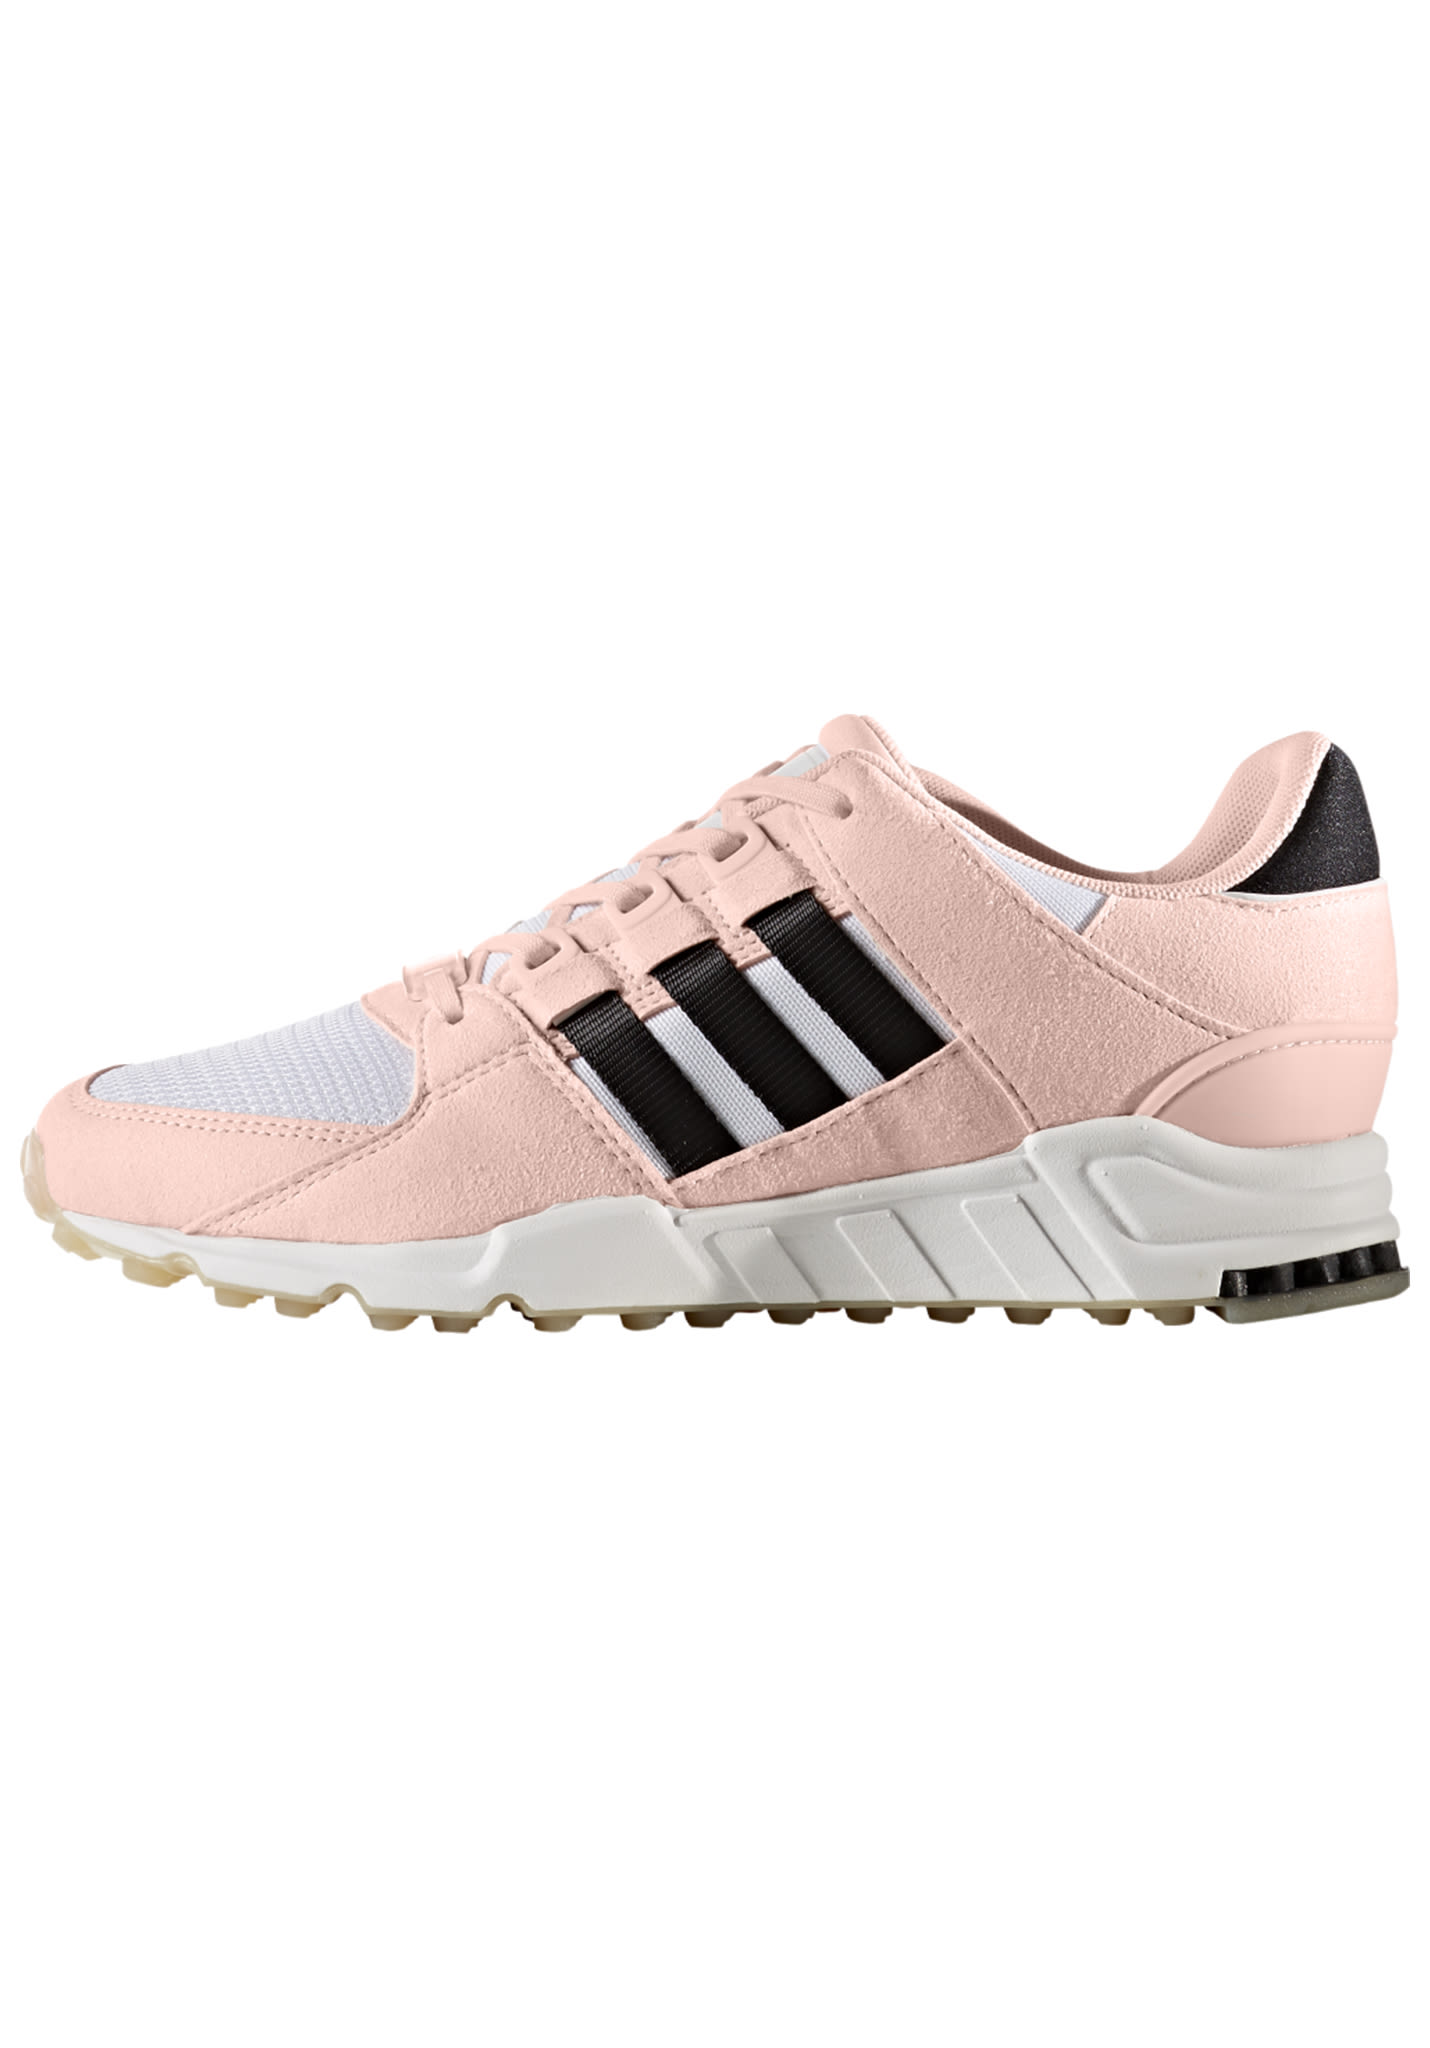 the best attitude 8c323 06fa5 adidas eqt support rf womens pink